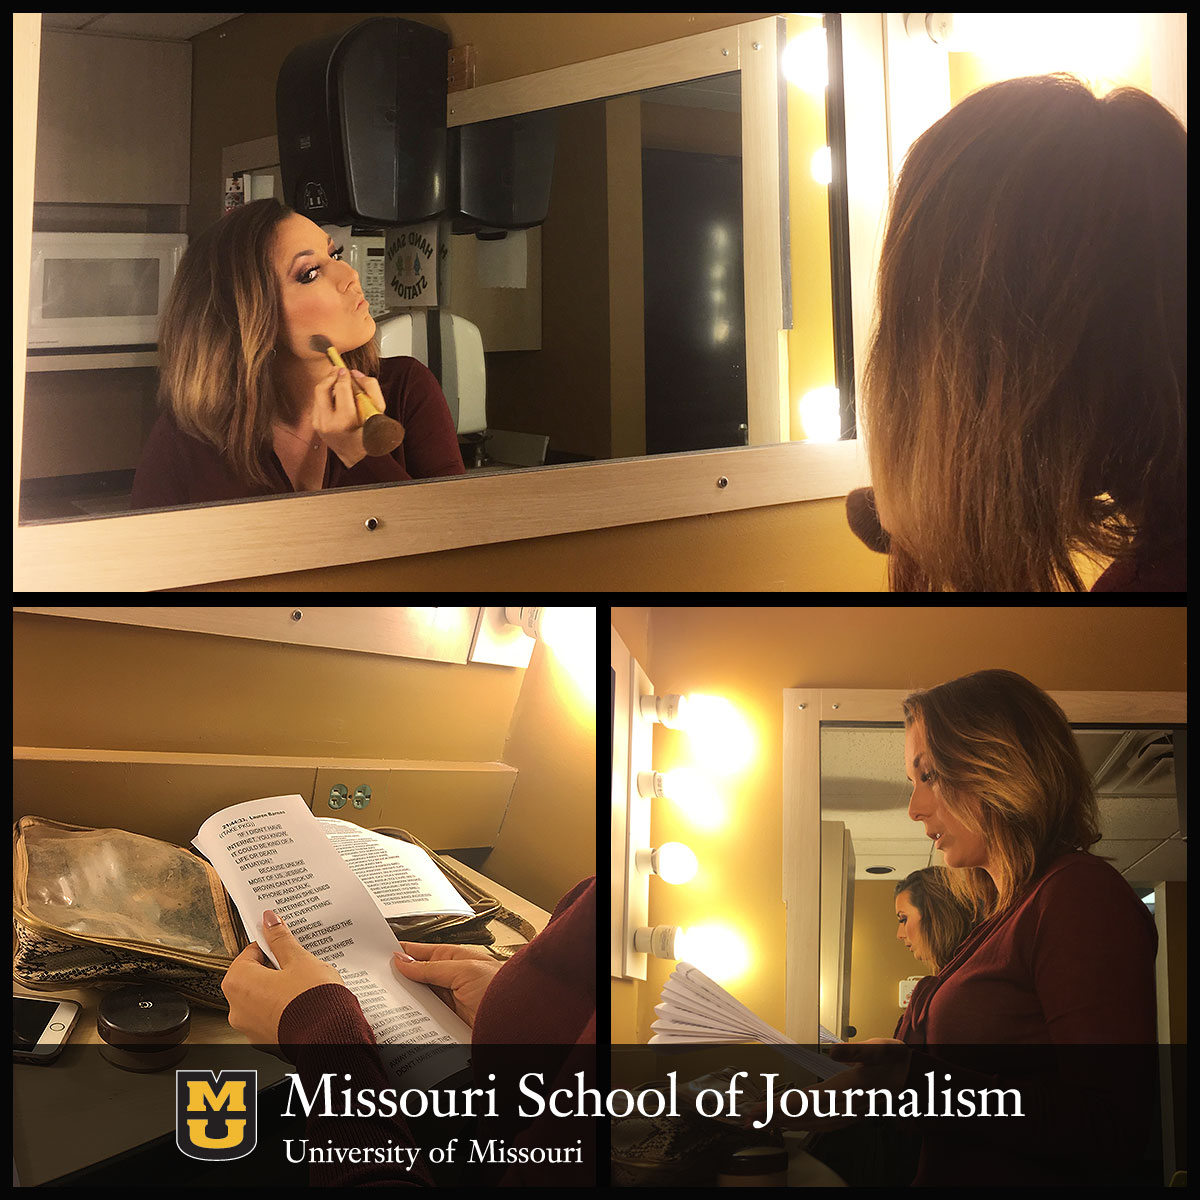 Radio-Television Journalism Senior Lauren Barnas